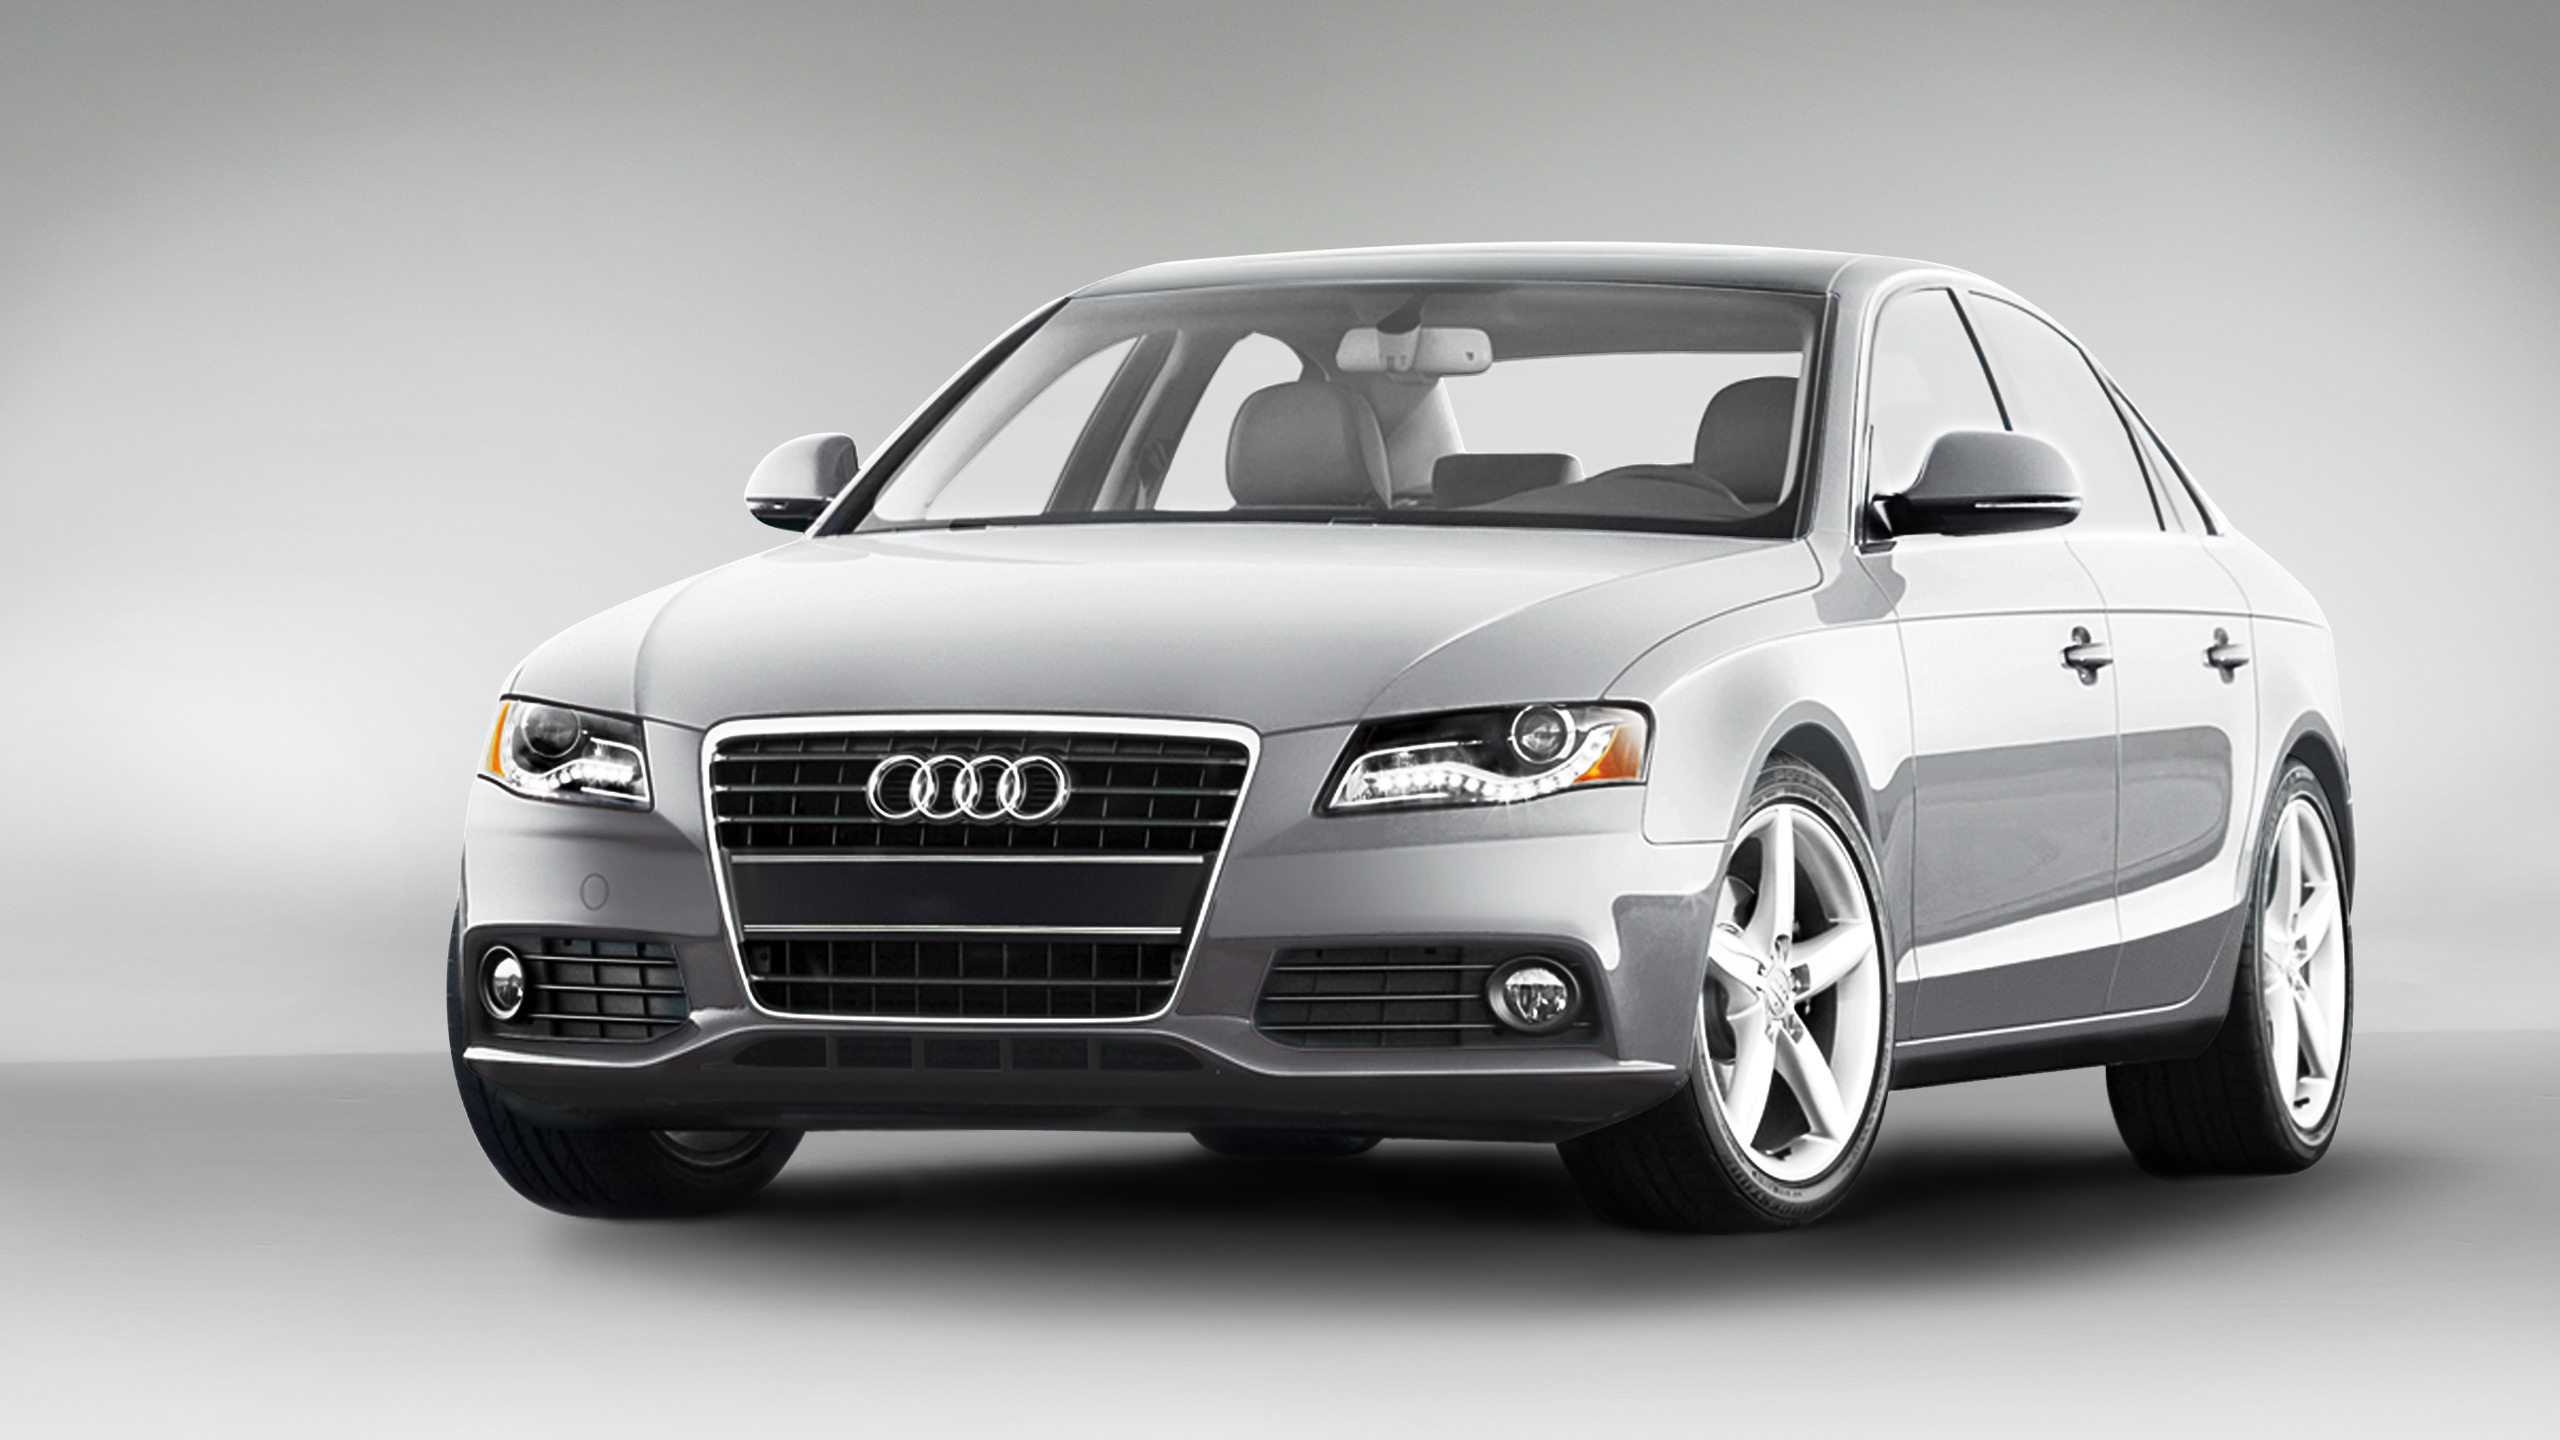 audi a4 b8 facelift 2011 1 8 tfsi quattro 170 hp. Black Bedroom Furniture Sets. Home Design Ideas